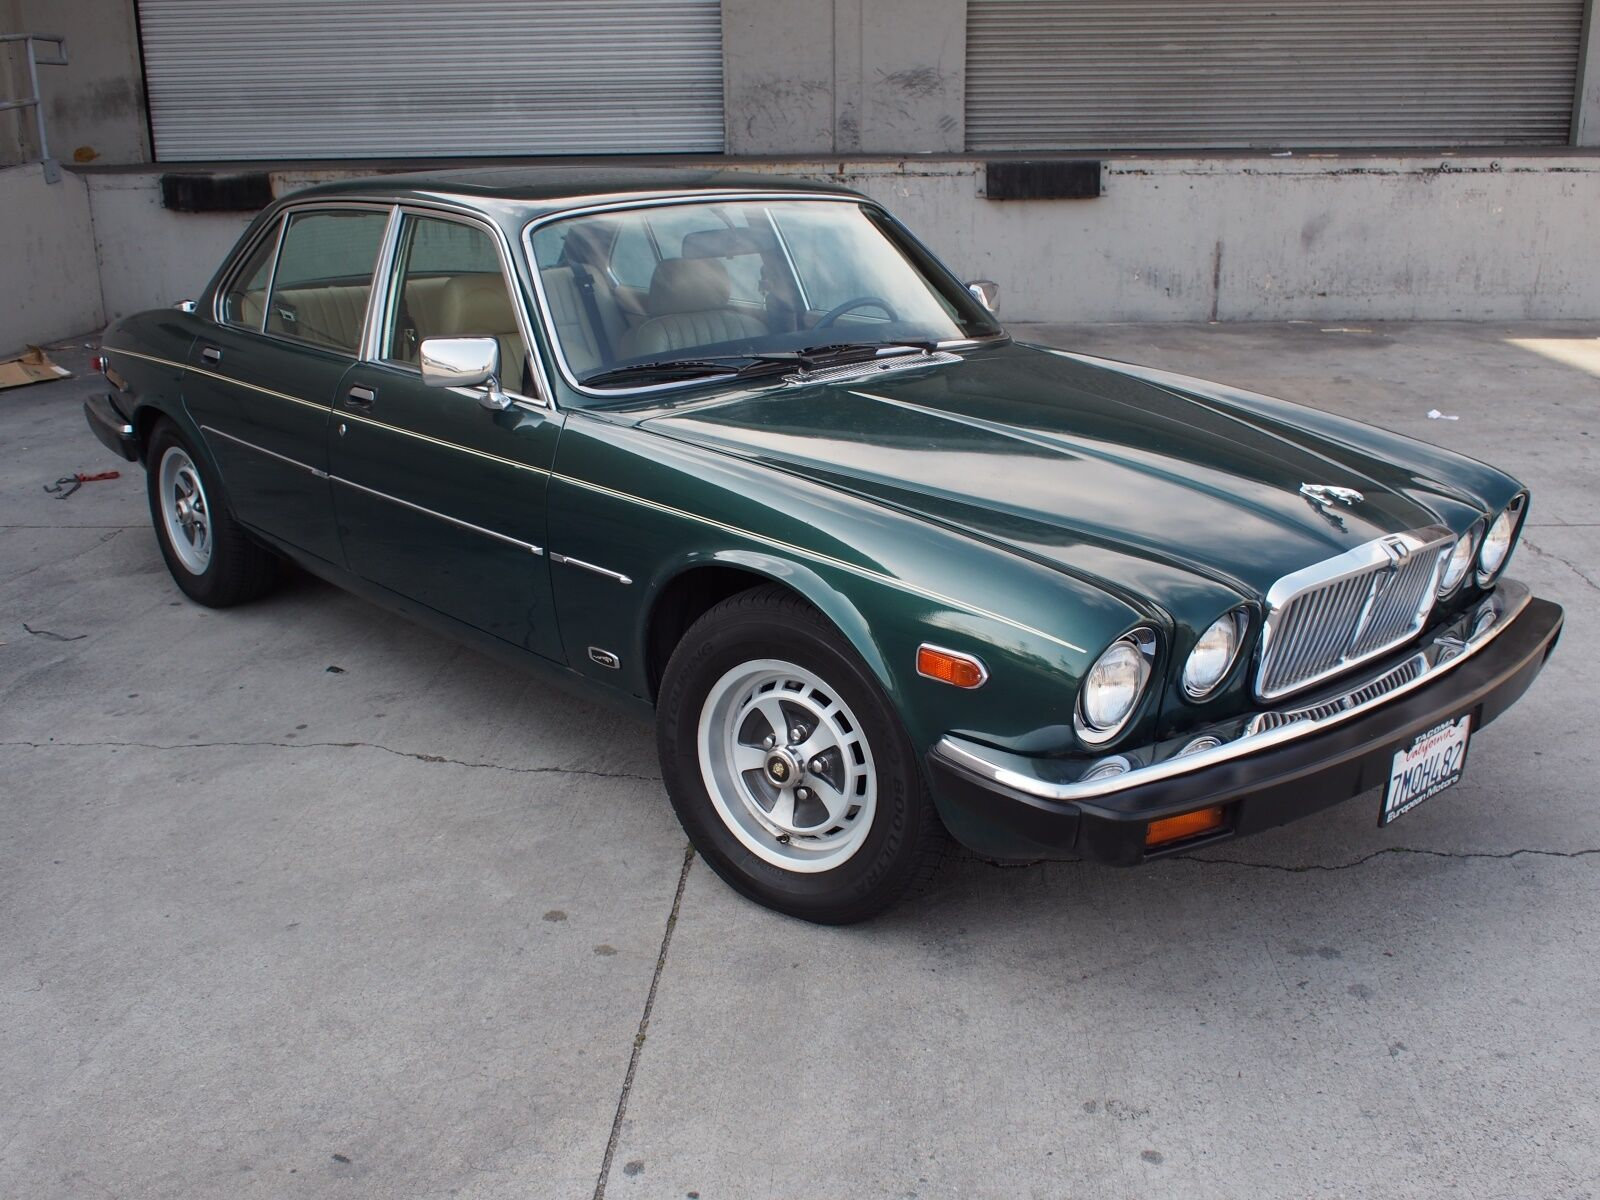 1984 jaguar xj6 4 2 series 3 british racing green used jaguar xj6 for sale in north. Black Bedroom Furniture Sets. Home Design Ideas